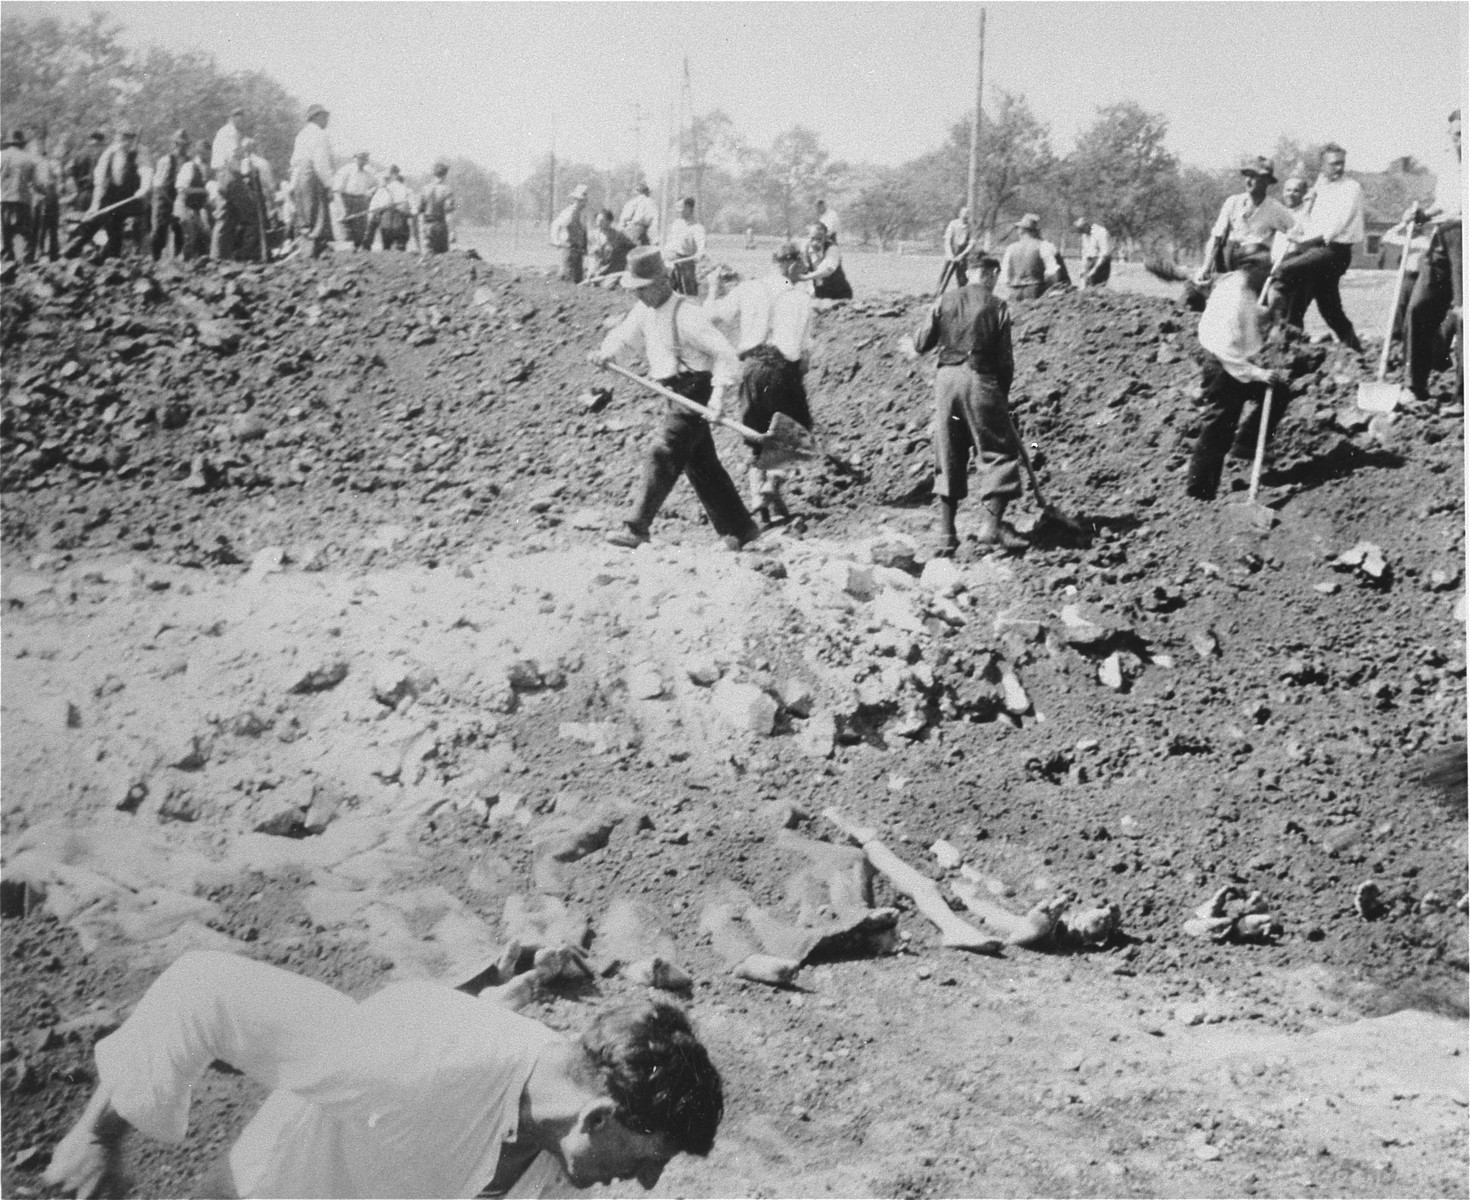 Austrian civilians prepare a mass grave to bury the bodies of former inmates in the Gusen concentration camp.